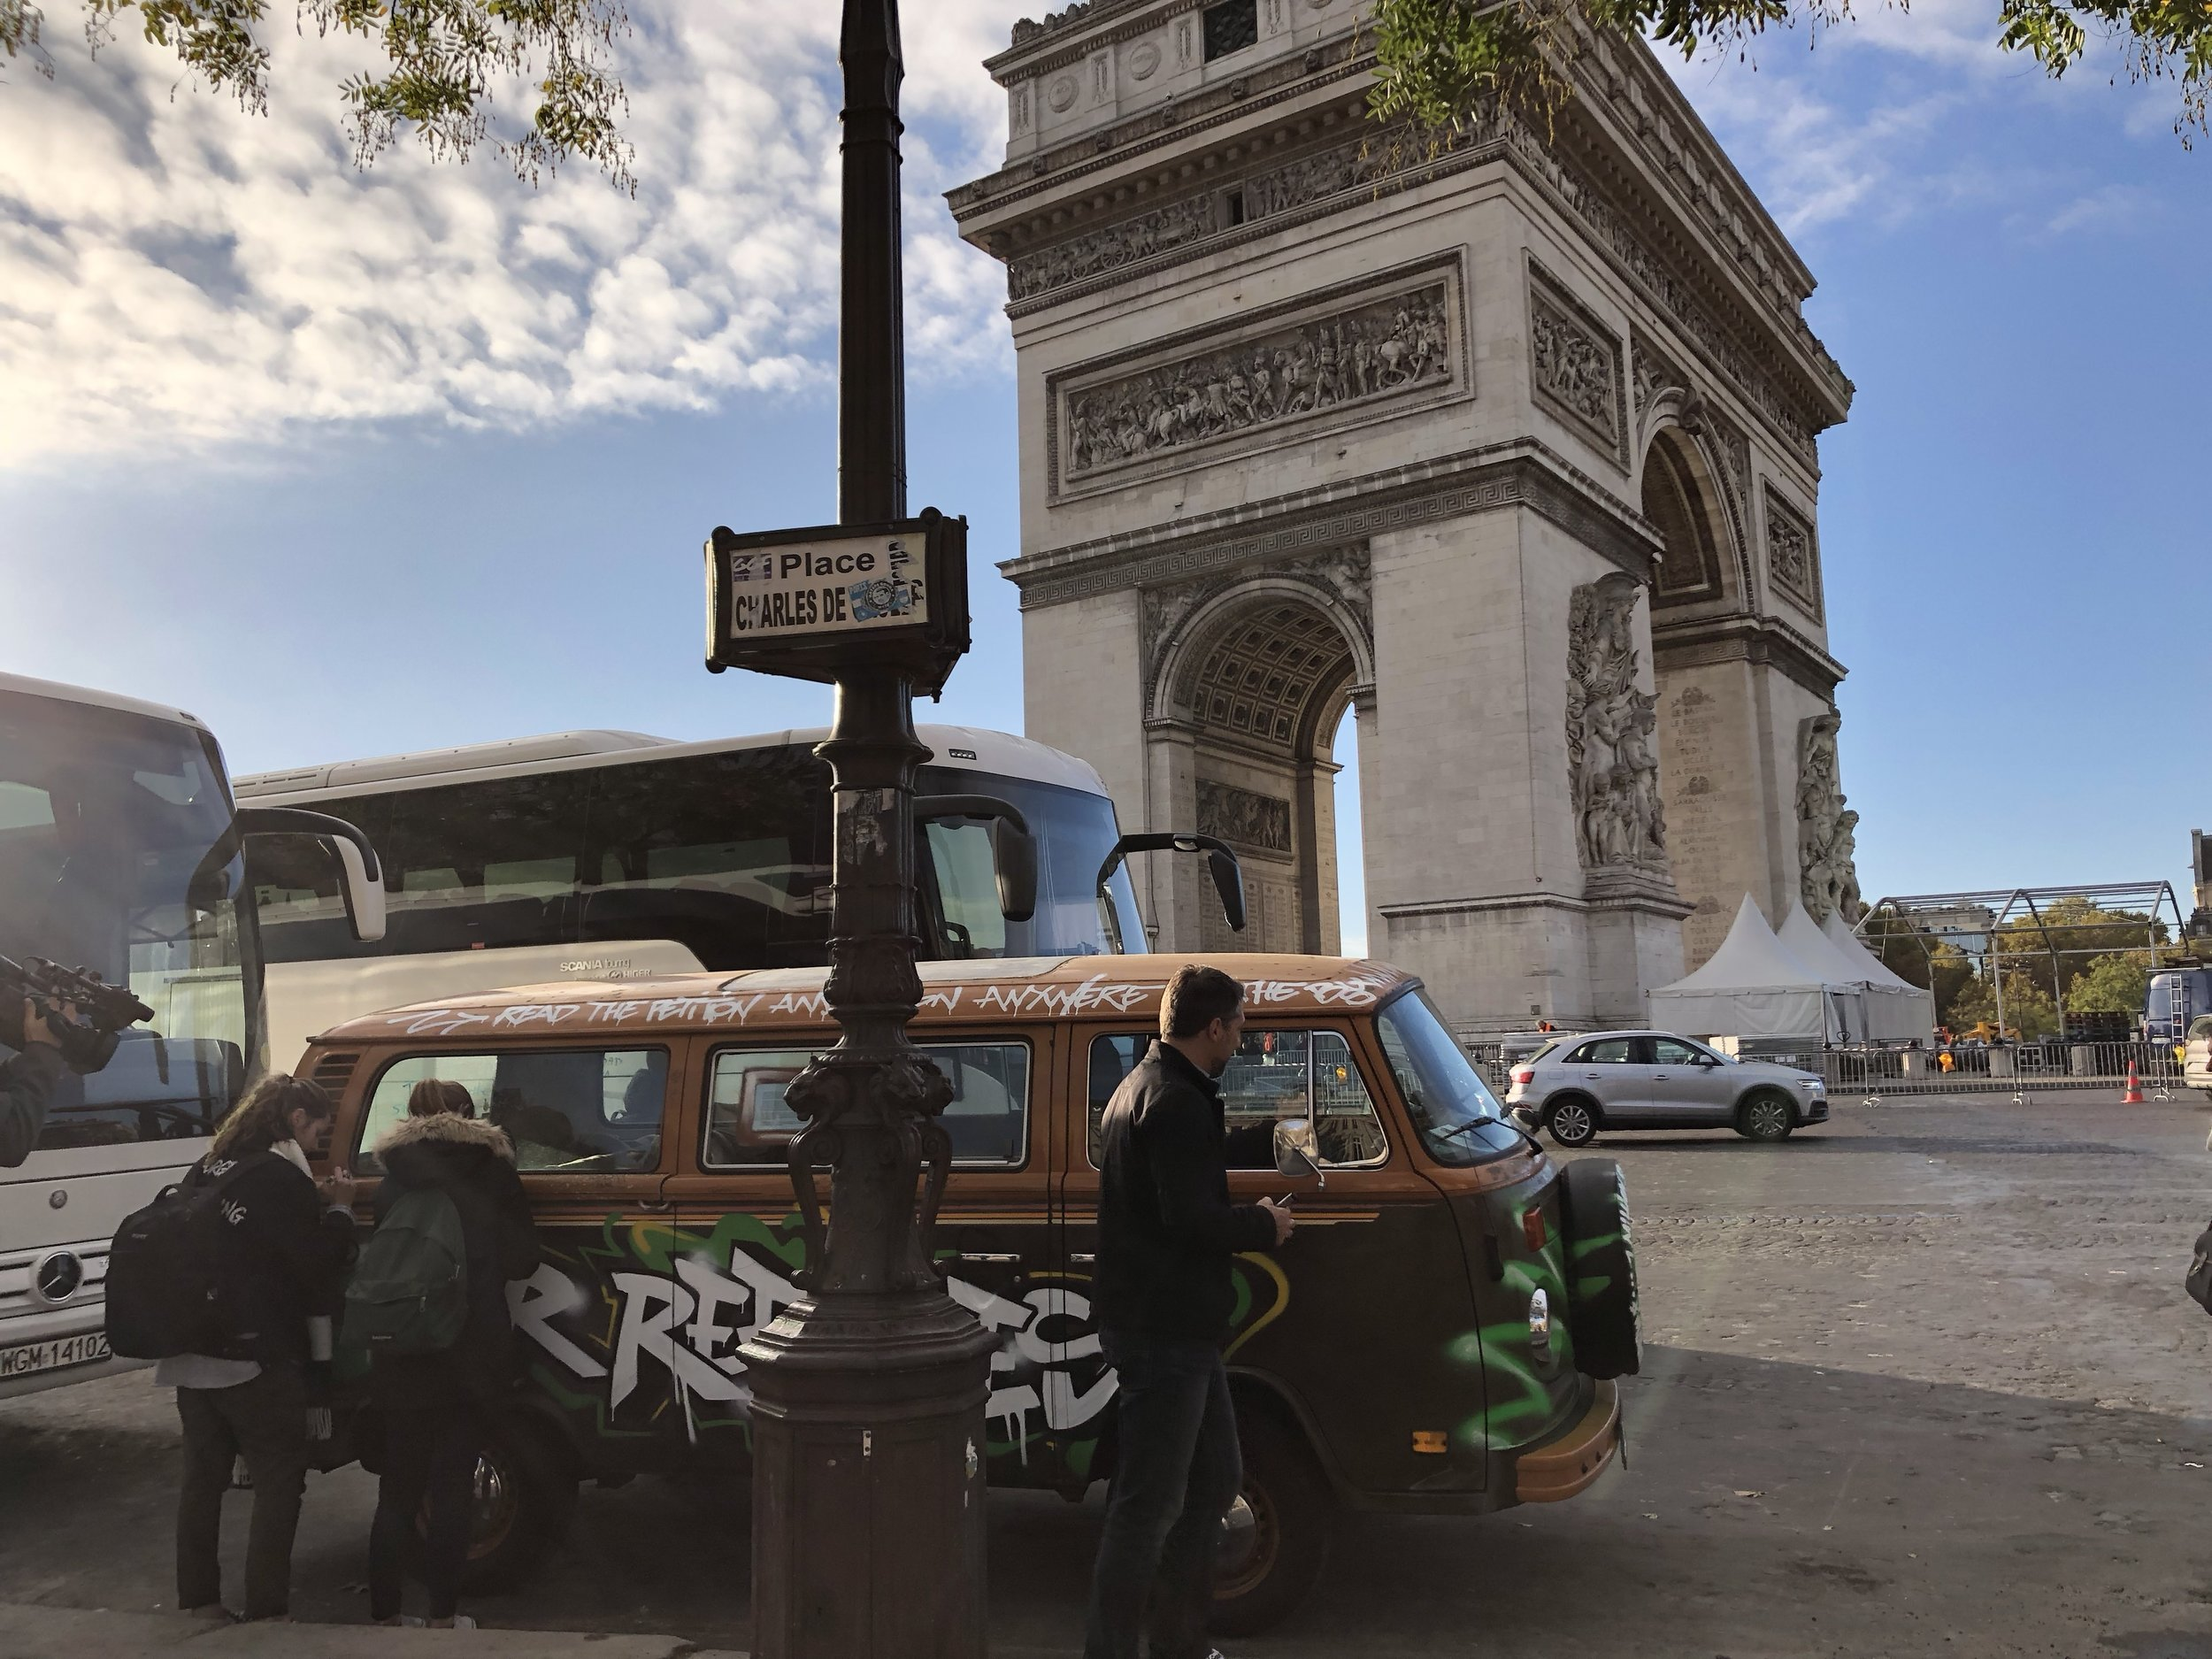 People signing vw bus outside arc de triomphe.JPG